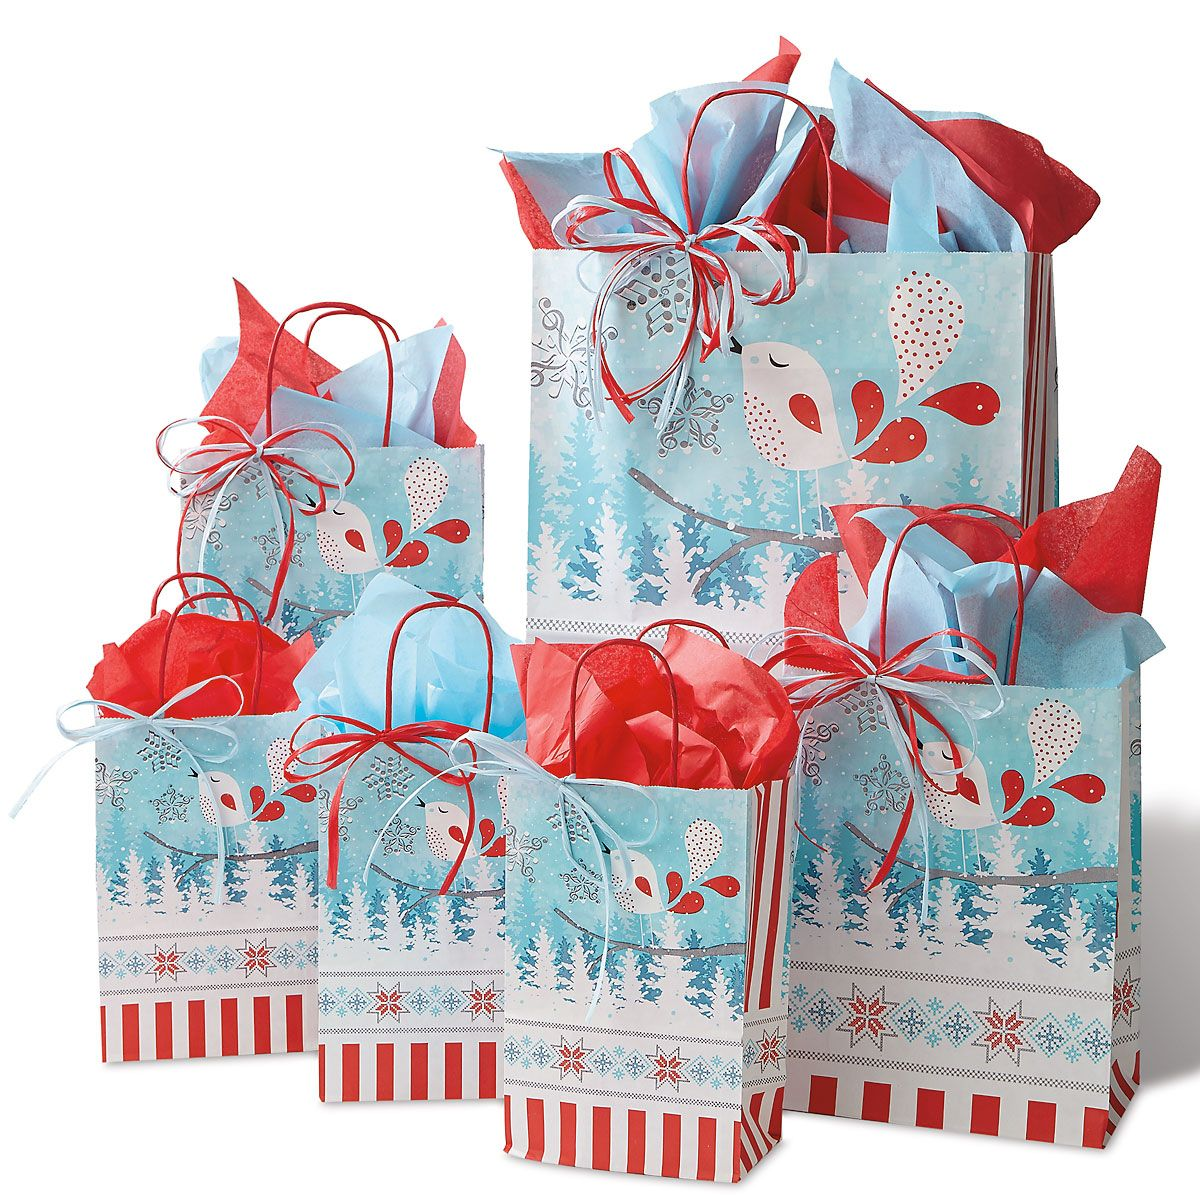 Simple Birds Holiday Gift Bag Set